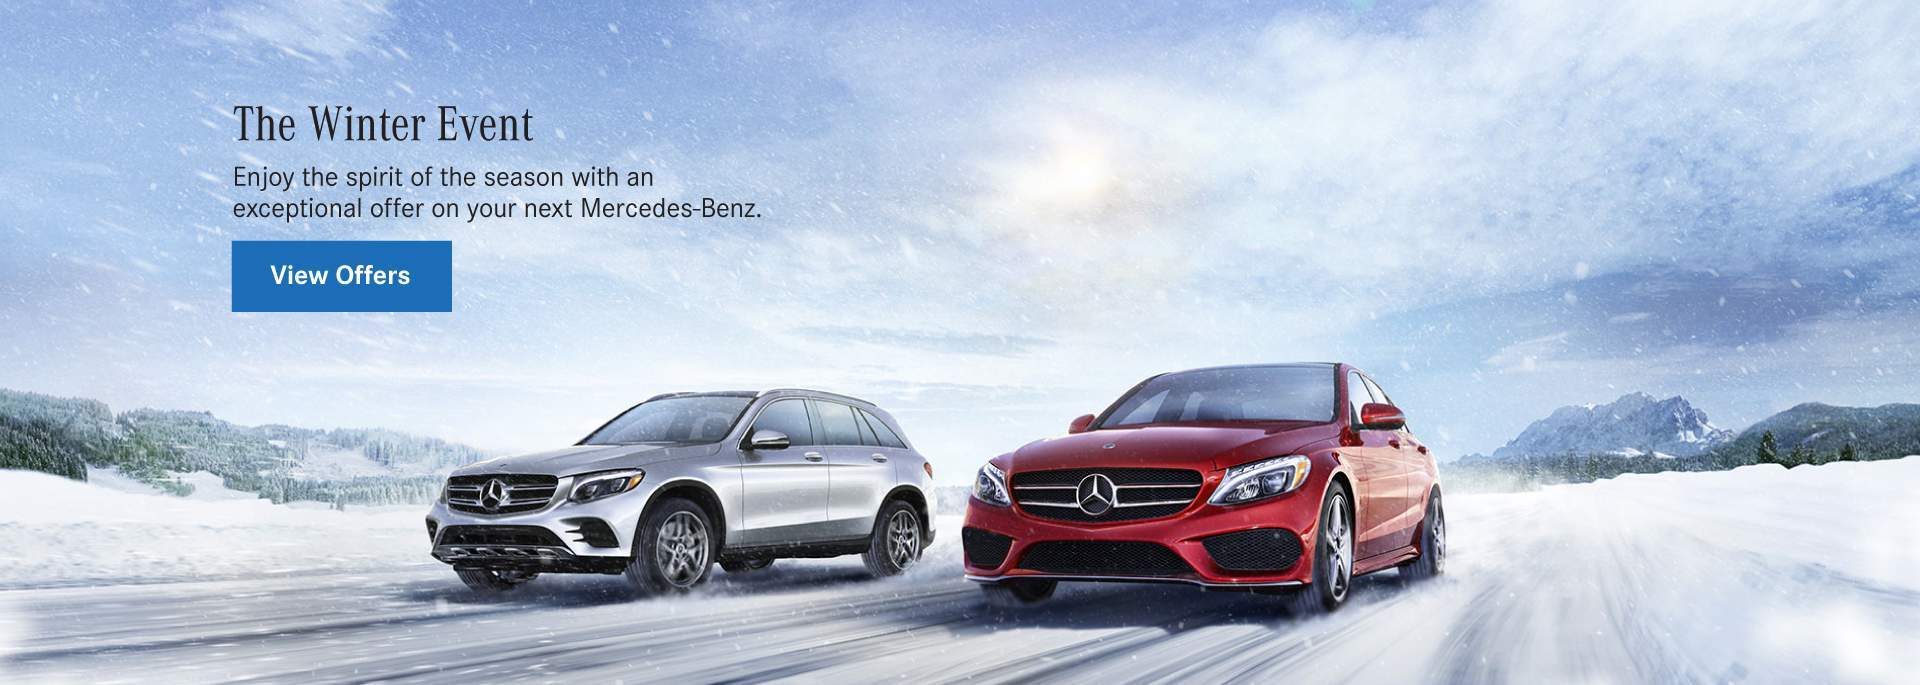 Mercedes benz dealership coral gables fl used cars for Mercedes benz dealers in florida